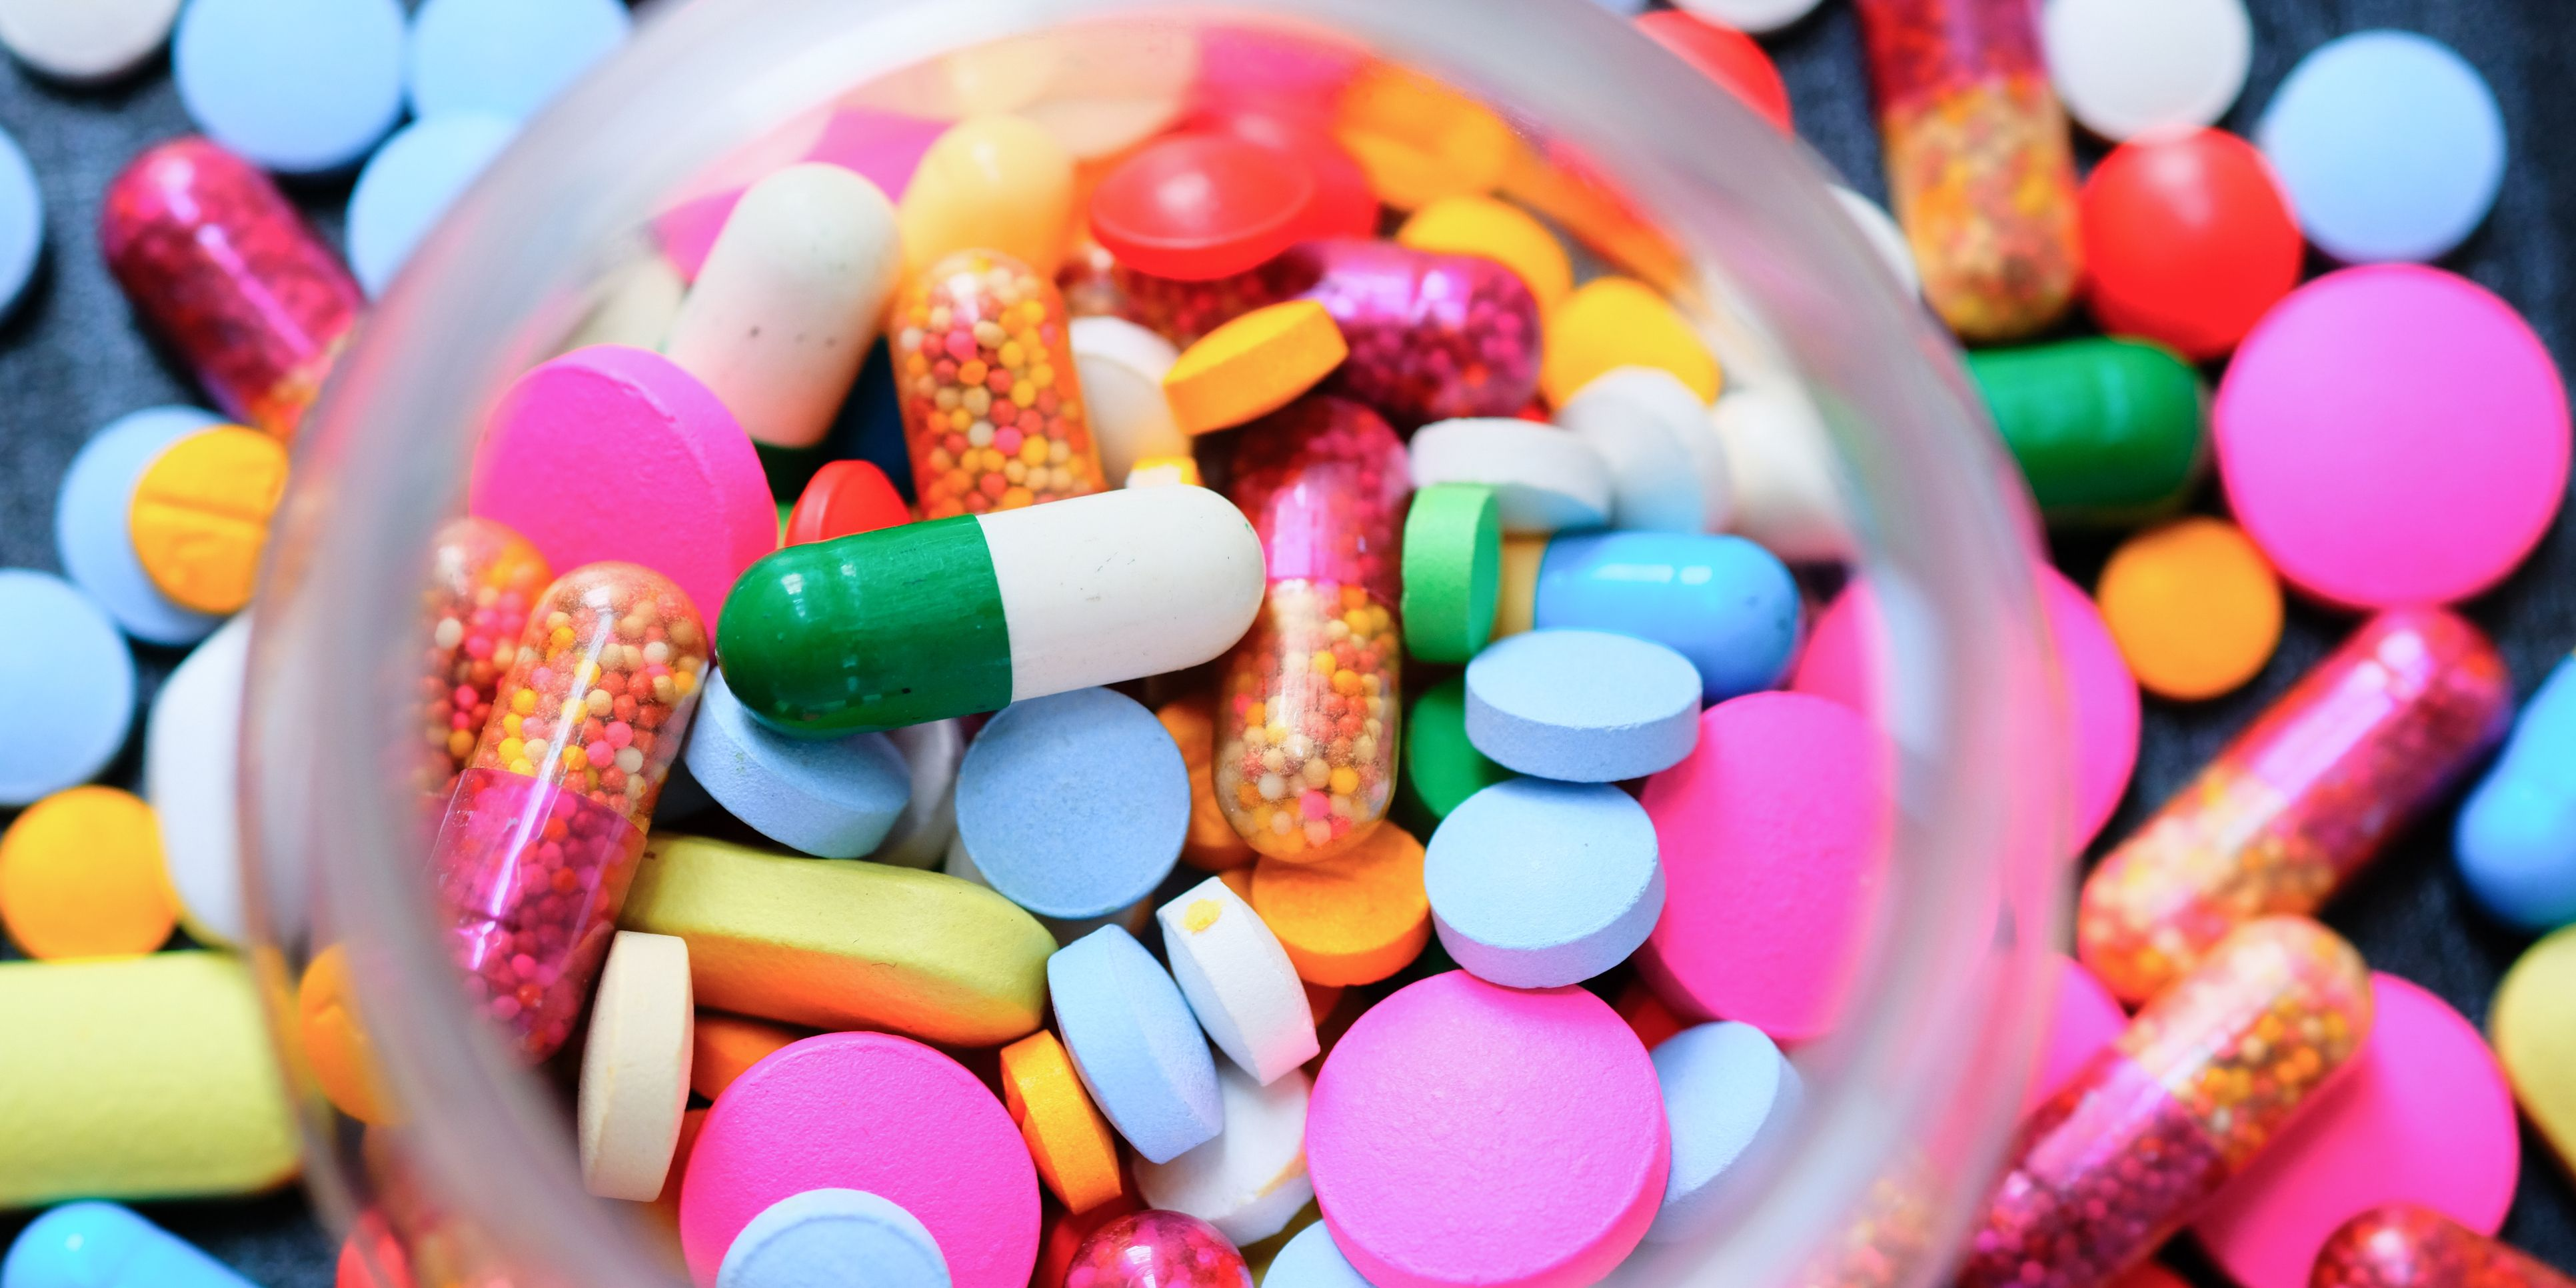 Looking down on a open prescription bottles with assorted pills